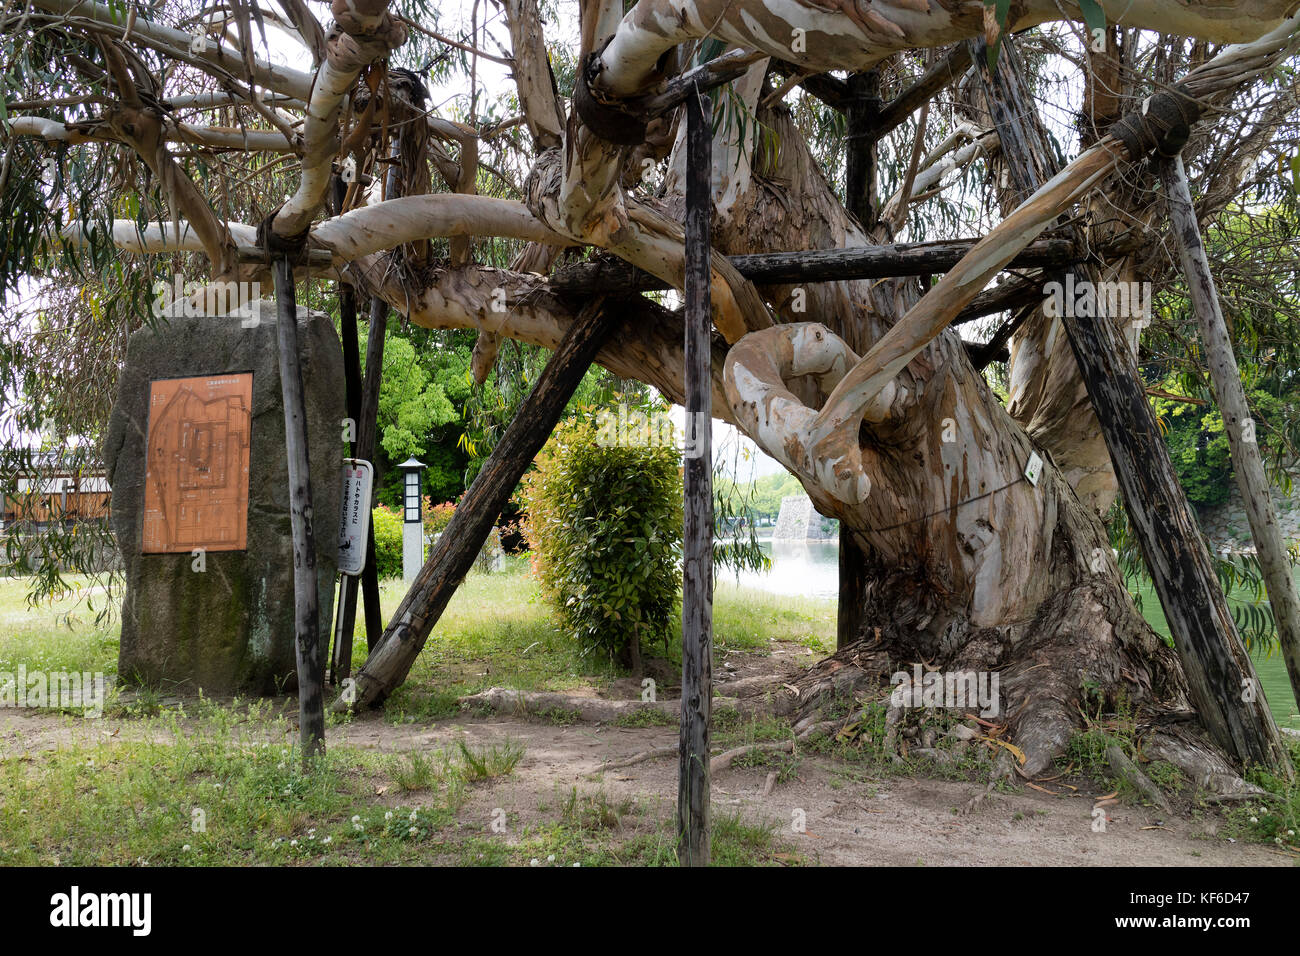 Hiroshima, Japan - May 25, 2017 : Deformed Eucalyptus tree at Hiroshima Castle that survived the A bom in 1945 - Stock Image